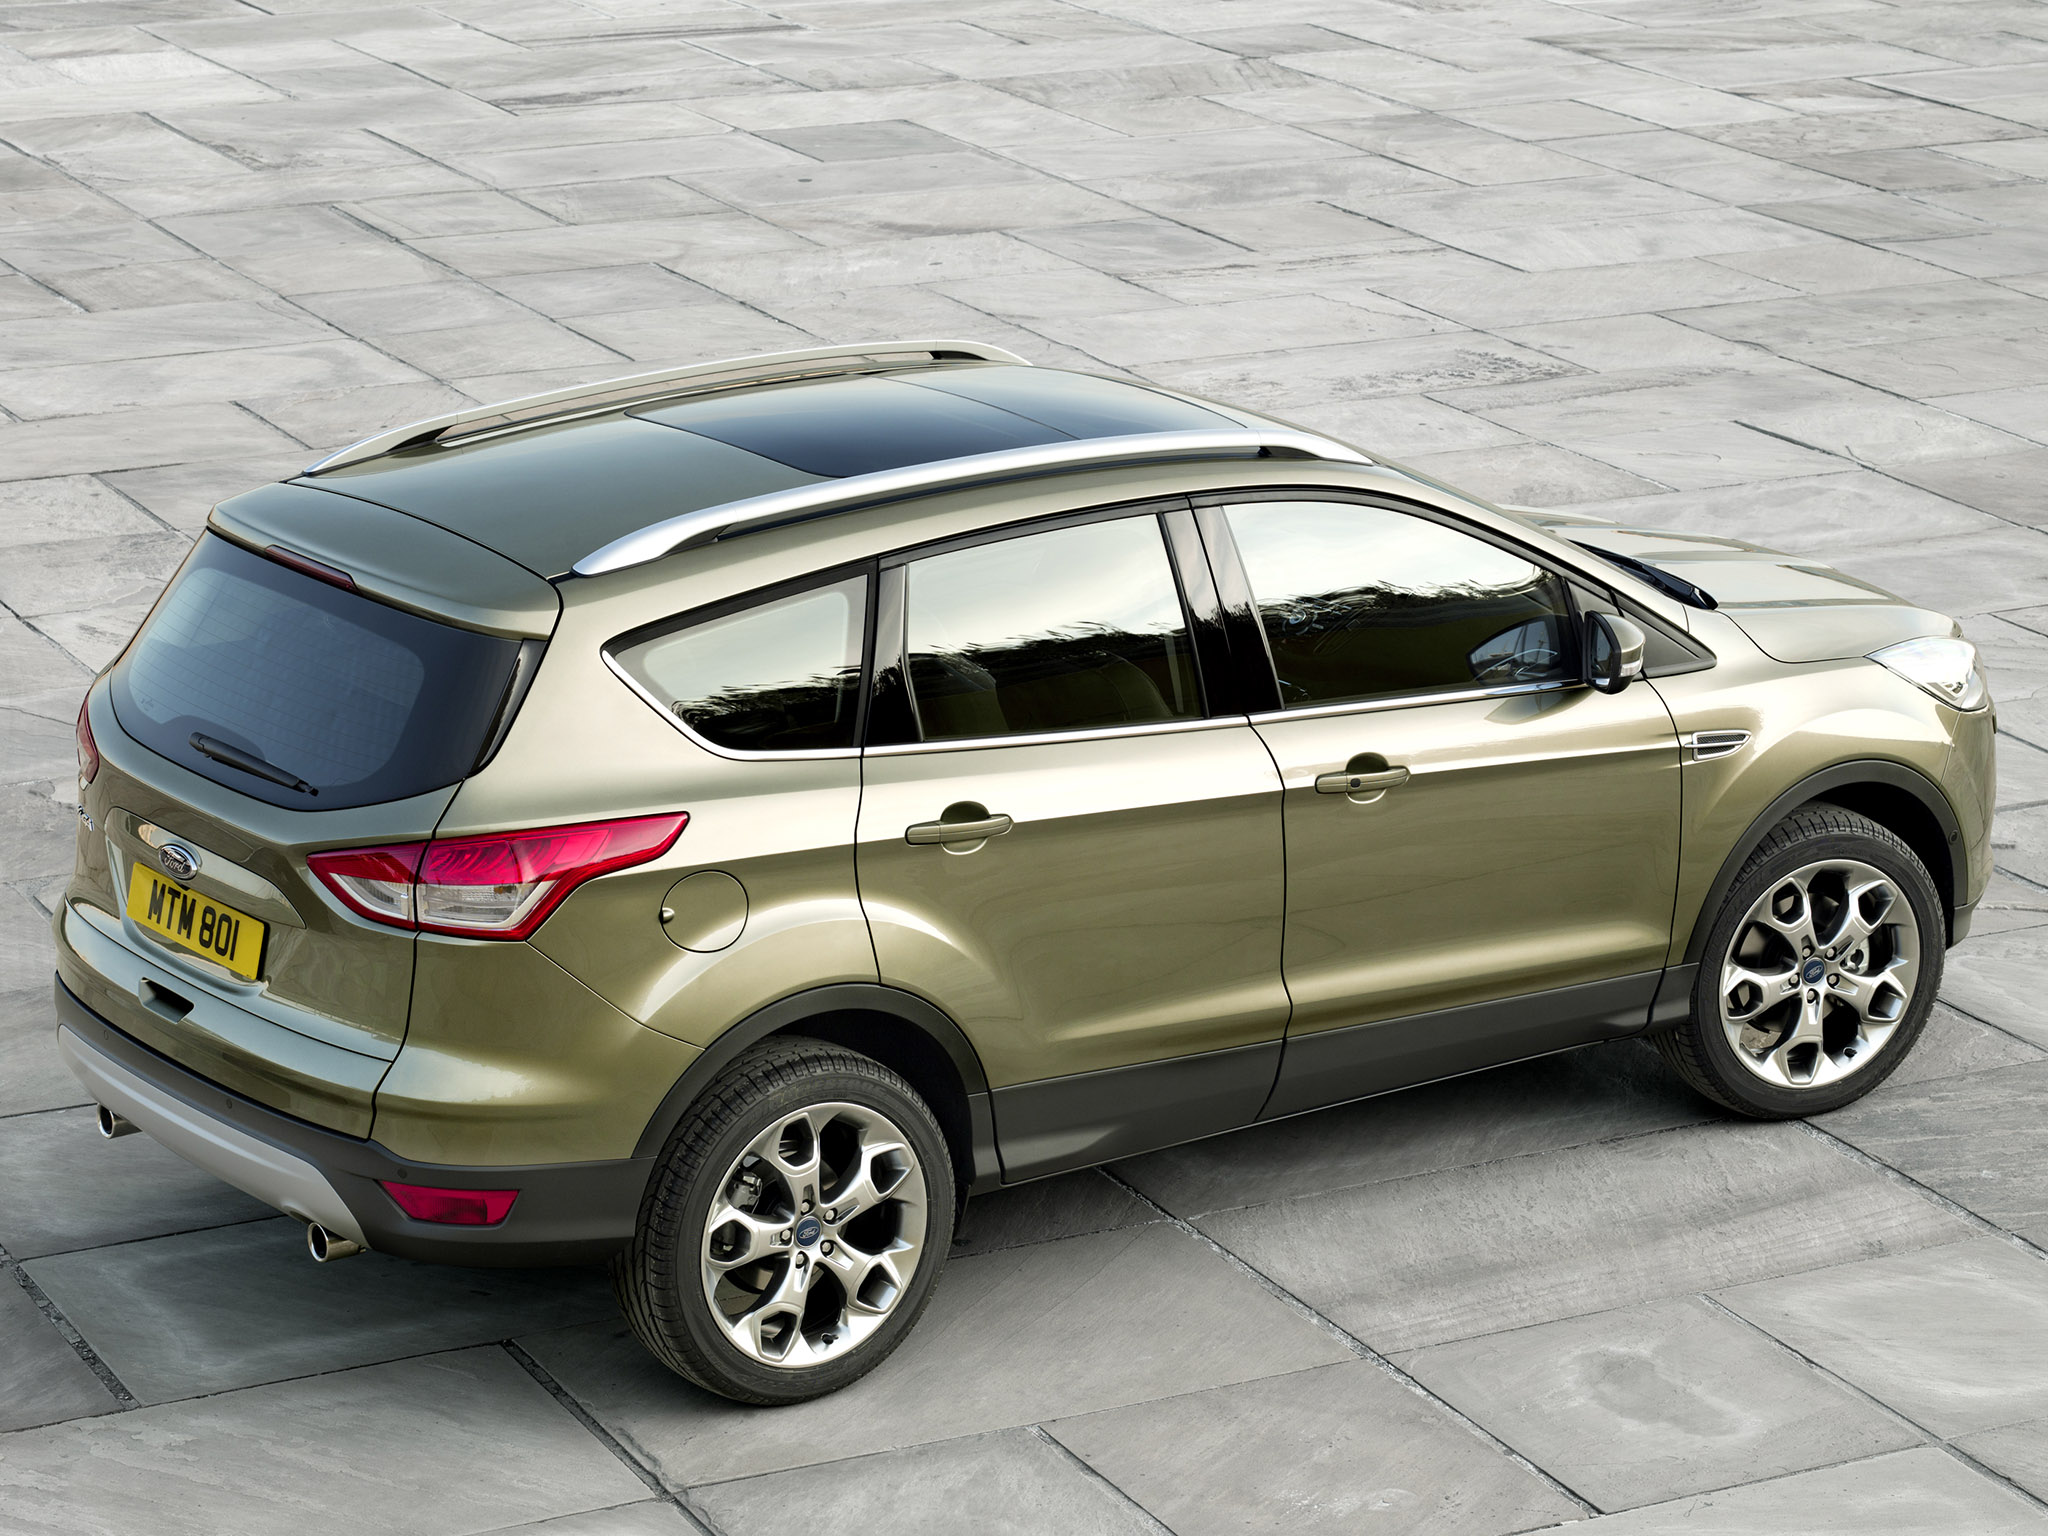 ford kuga 2012 ford kuga 2012 photo 16 car in pictures car photo gallery. Black Bedroom Furniture Sets. Home Design Ideas